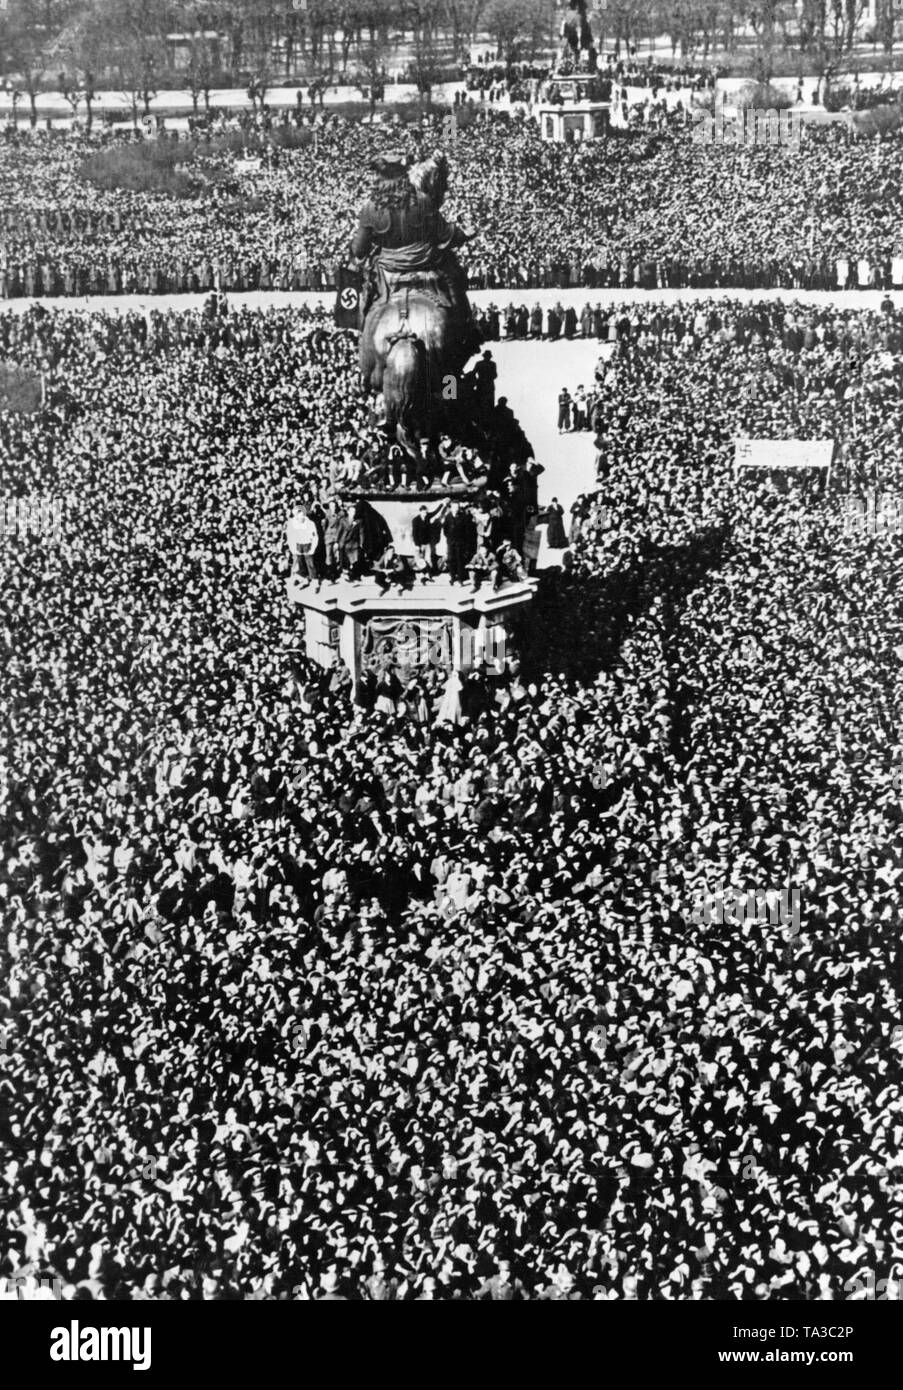 People gather in front of the Prinz Eugen monument on the Heldenplatz in Vienna. Nazi leader Adolf Hitler announces the annexation of Austria to the German Reich on the Heldenplatz. - Stock Image